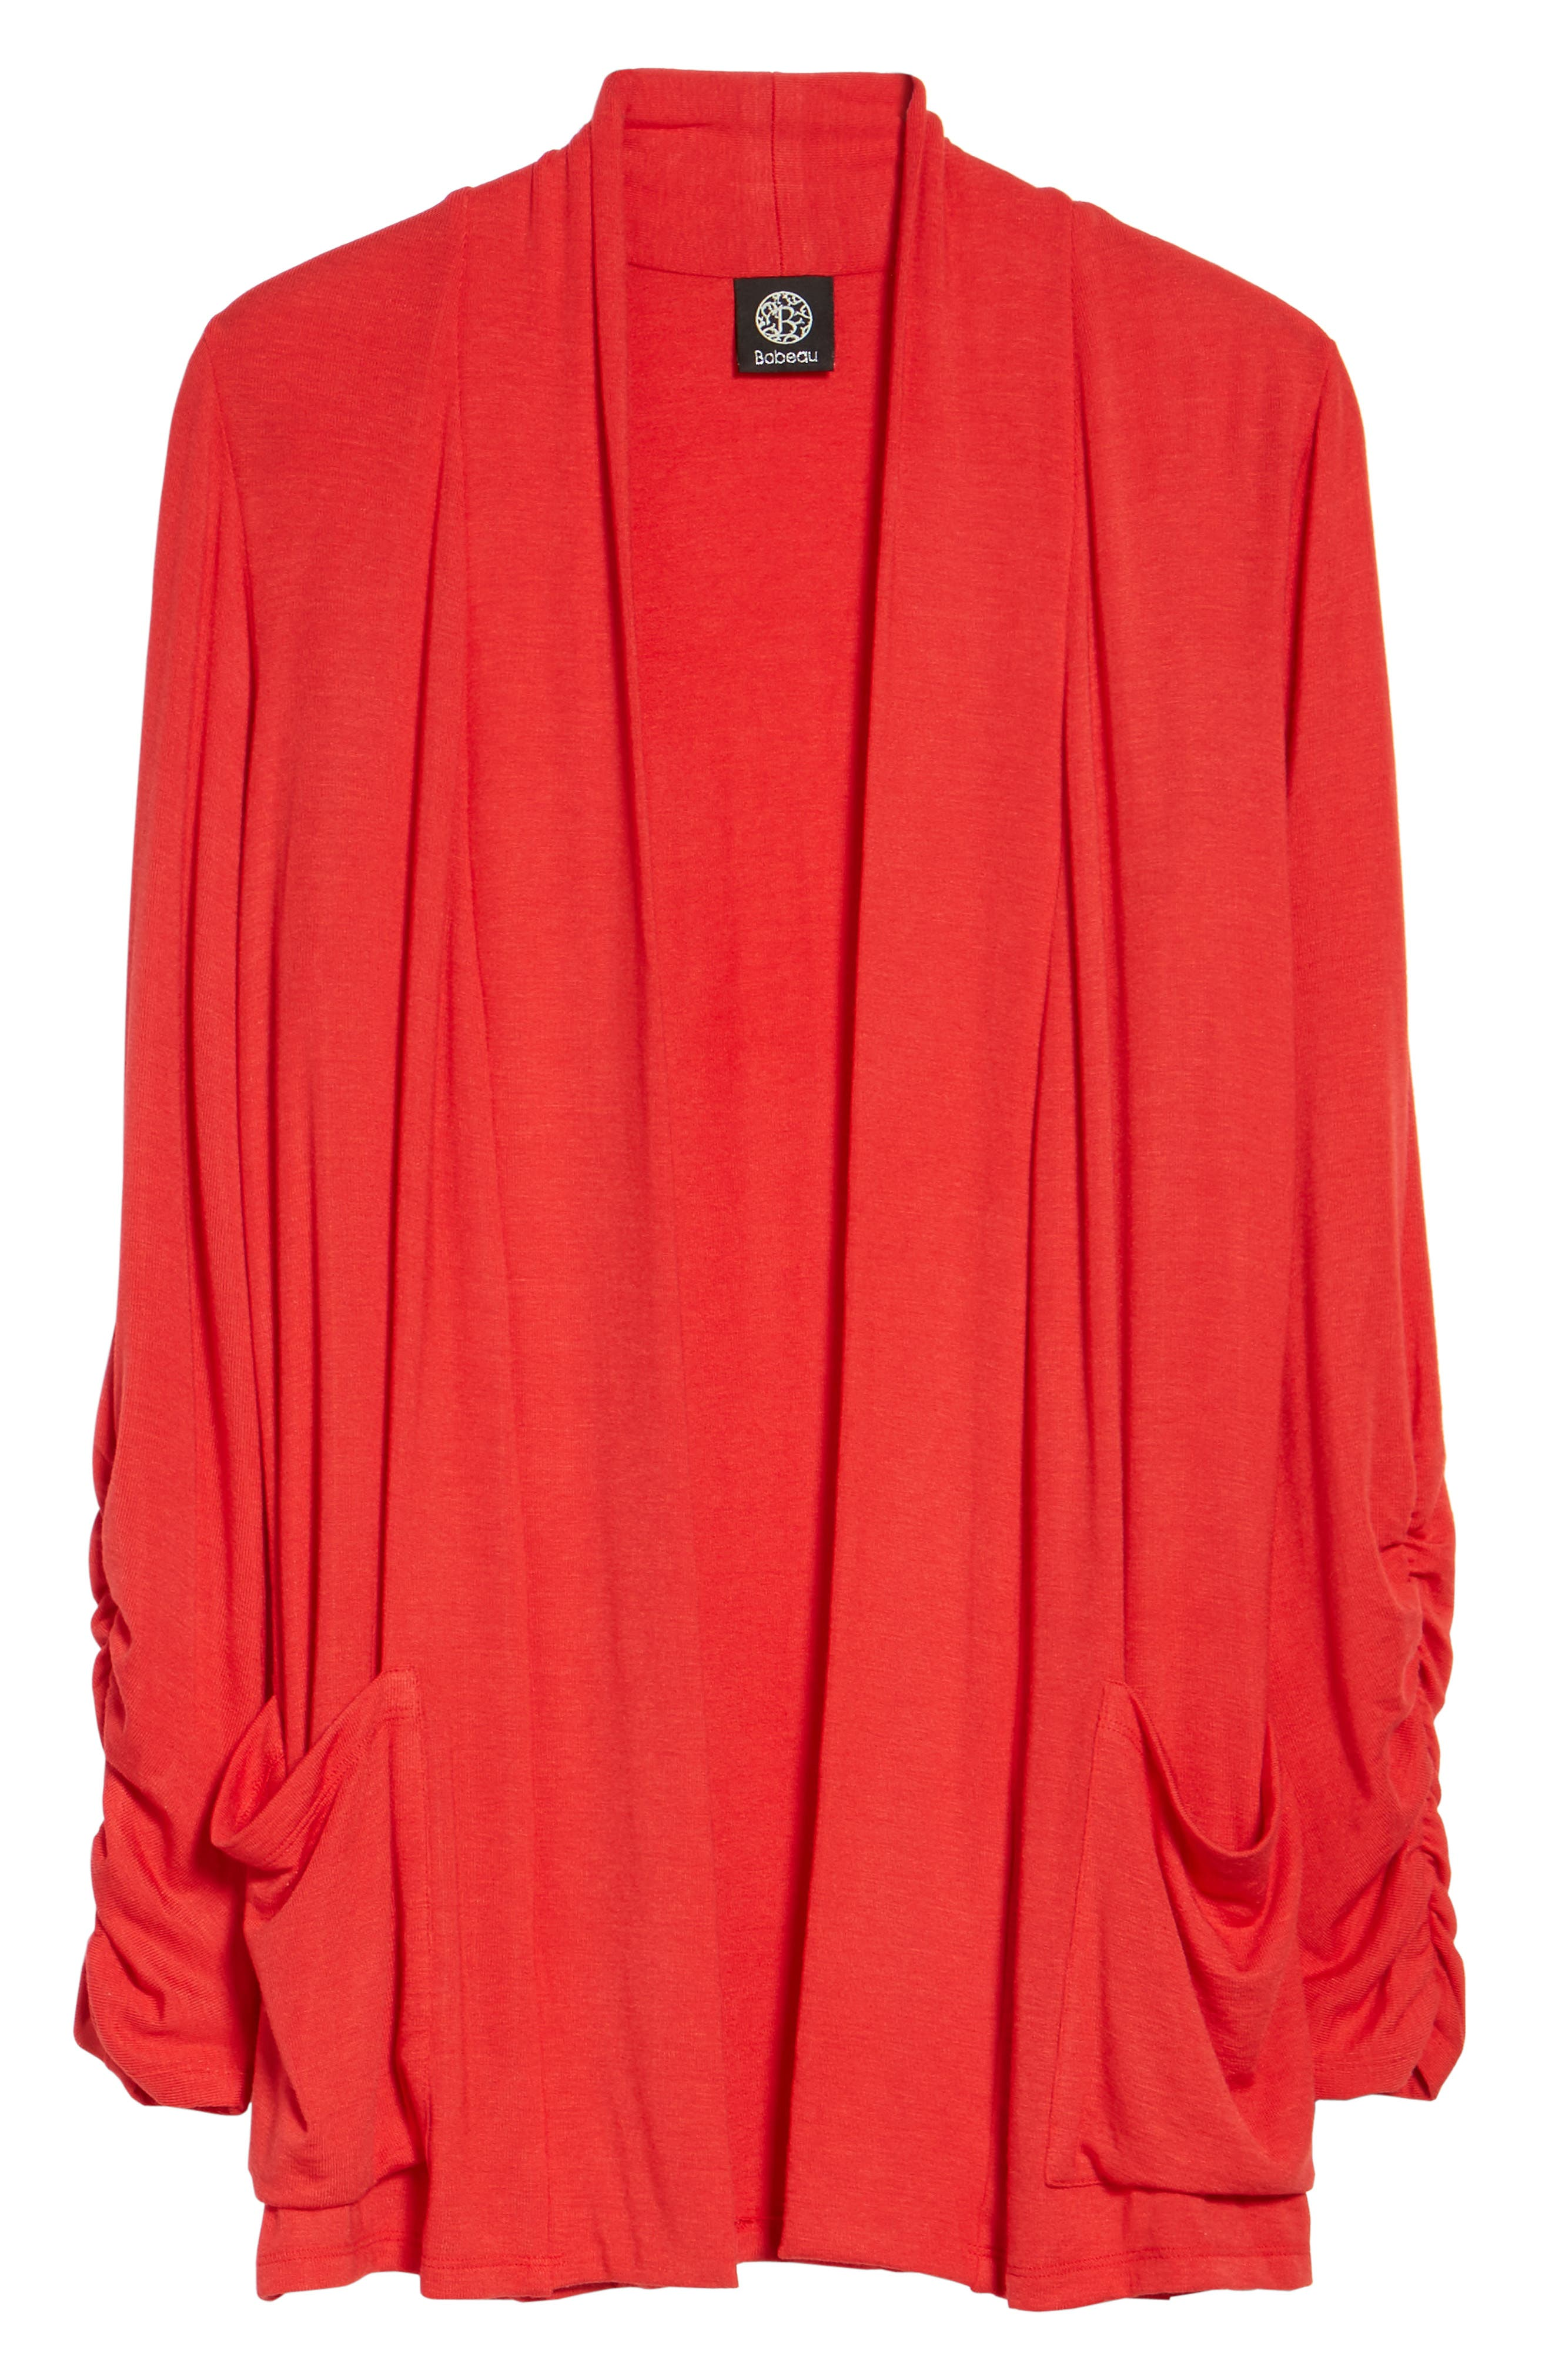 Ruched Sleeve Cardigan,                             Alternate thumbnail 7, color,                             Red Pepper